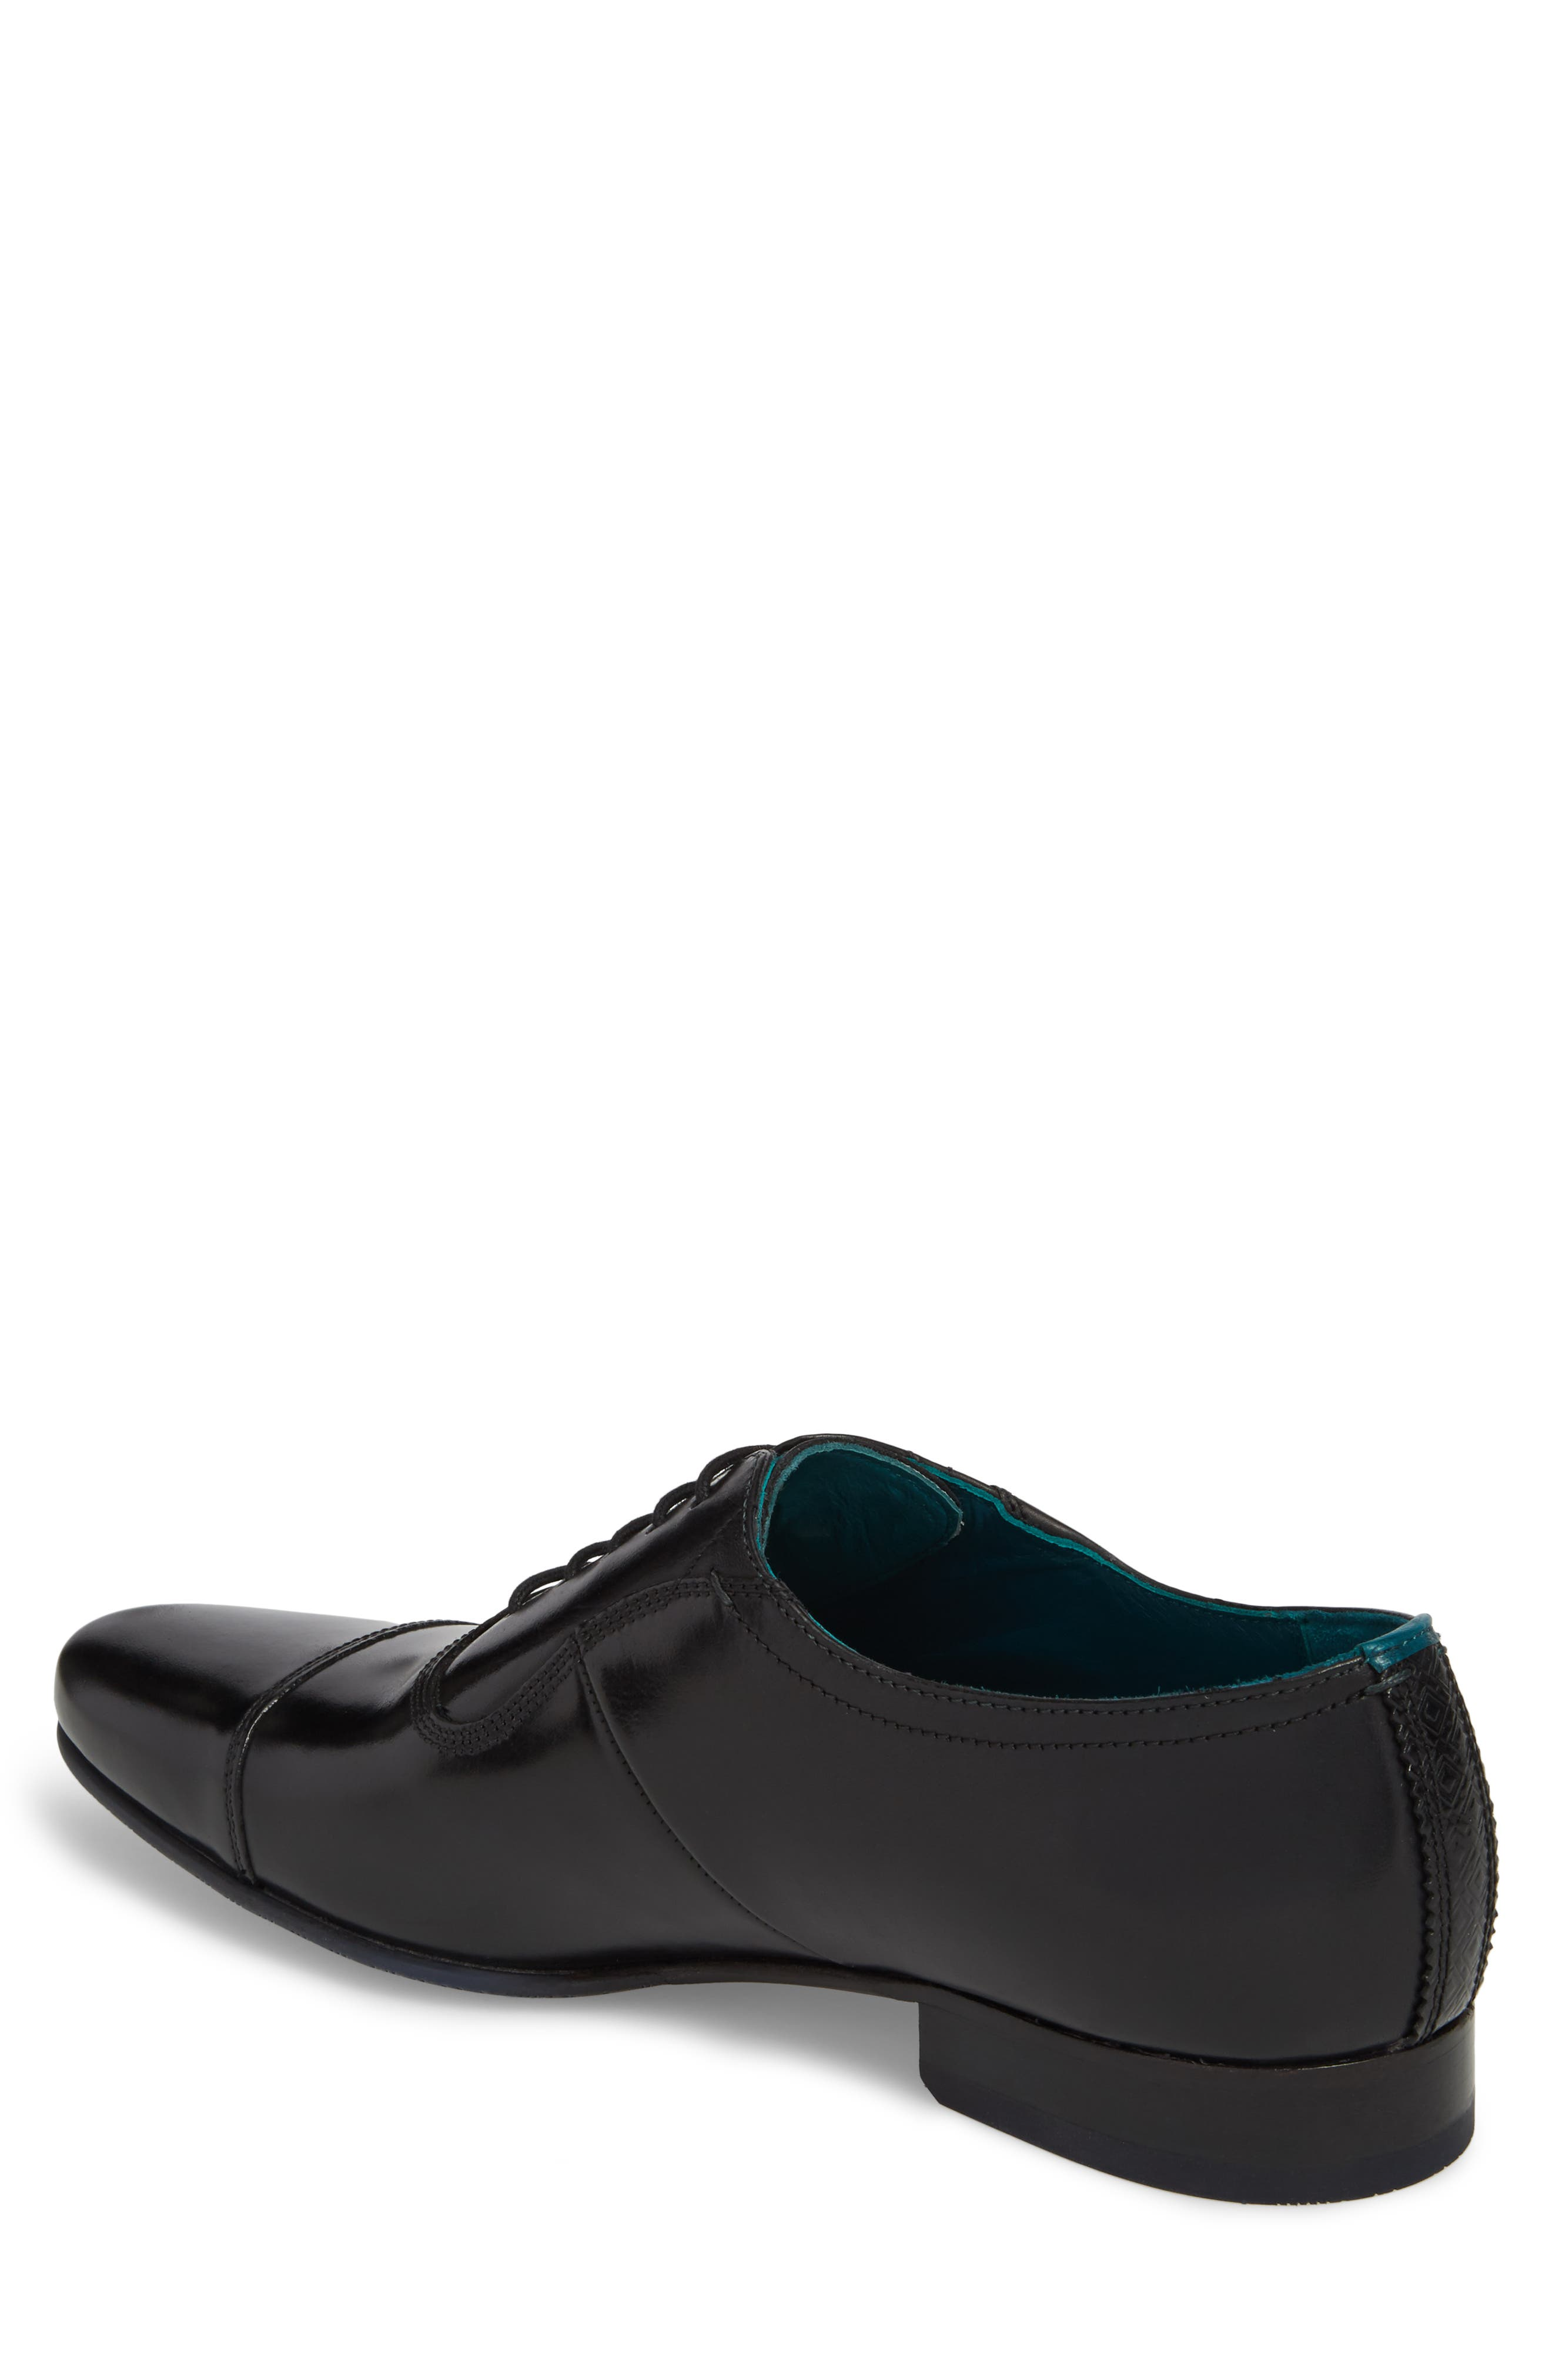 Karney Cap Toe Oxford,                             Alternate thumbnail 2, color,                             BLACK LEATHER